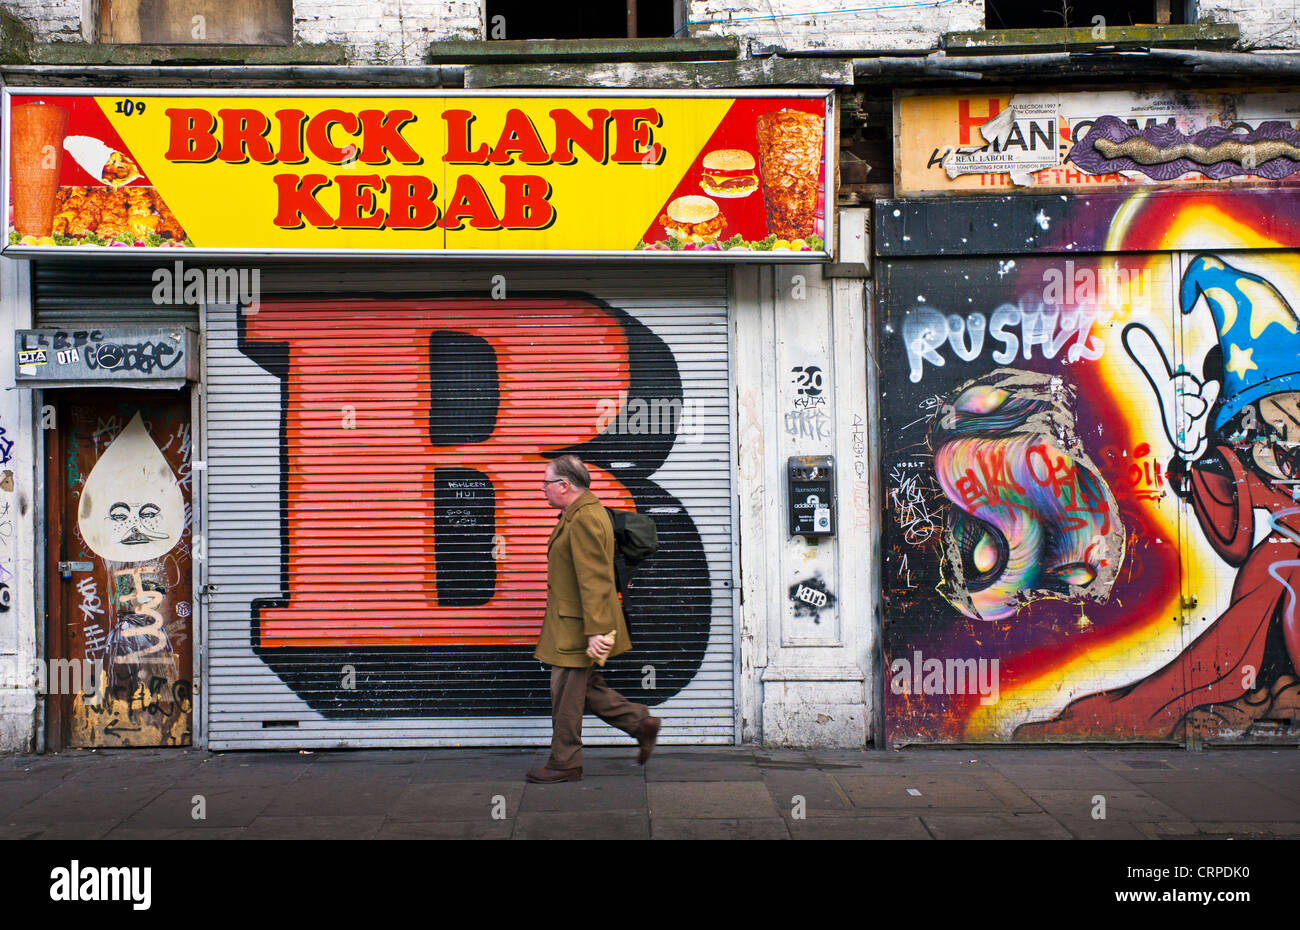 A man walking to work past shopfronts covered in graffiti on Brick Lane in the East End of London. - Stock Image